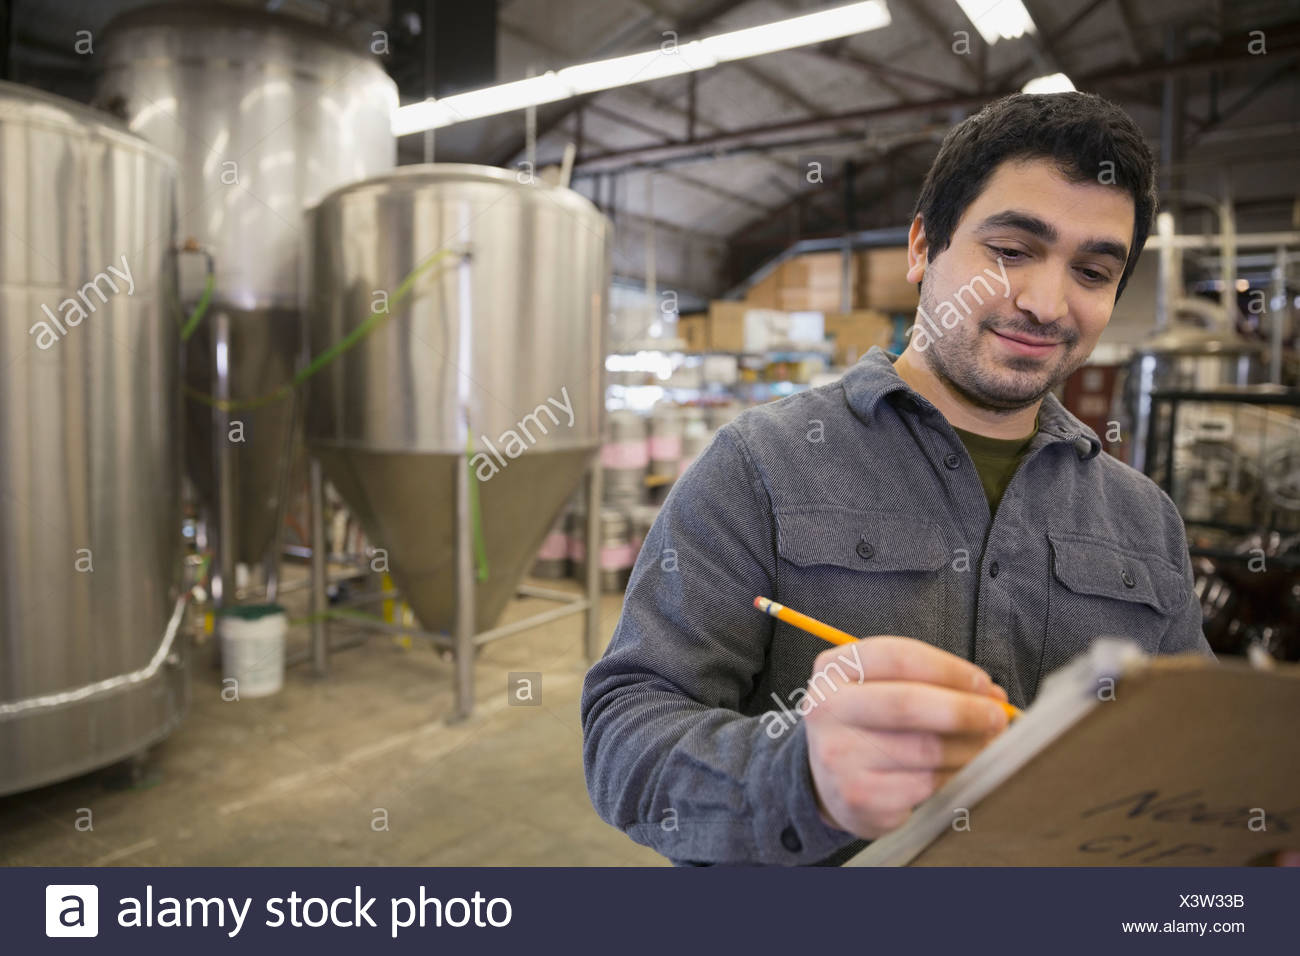 Brewery worker with clipboard near vats - Stock Image